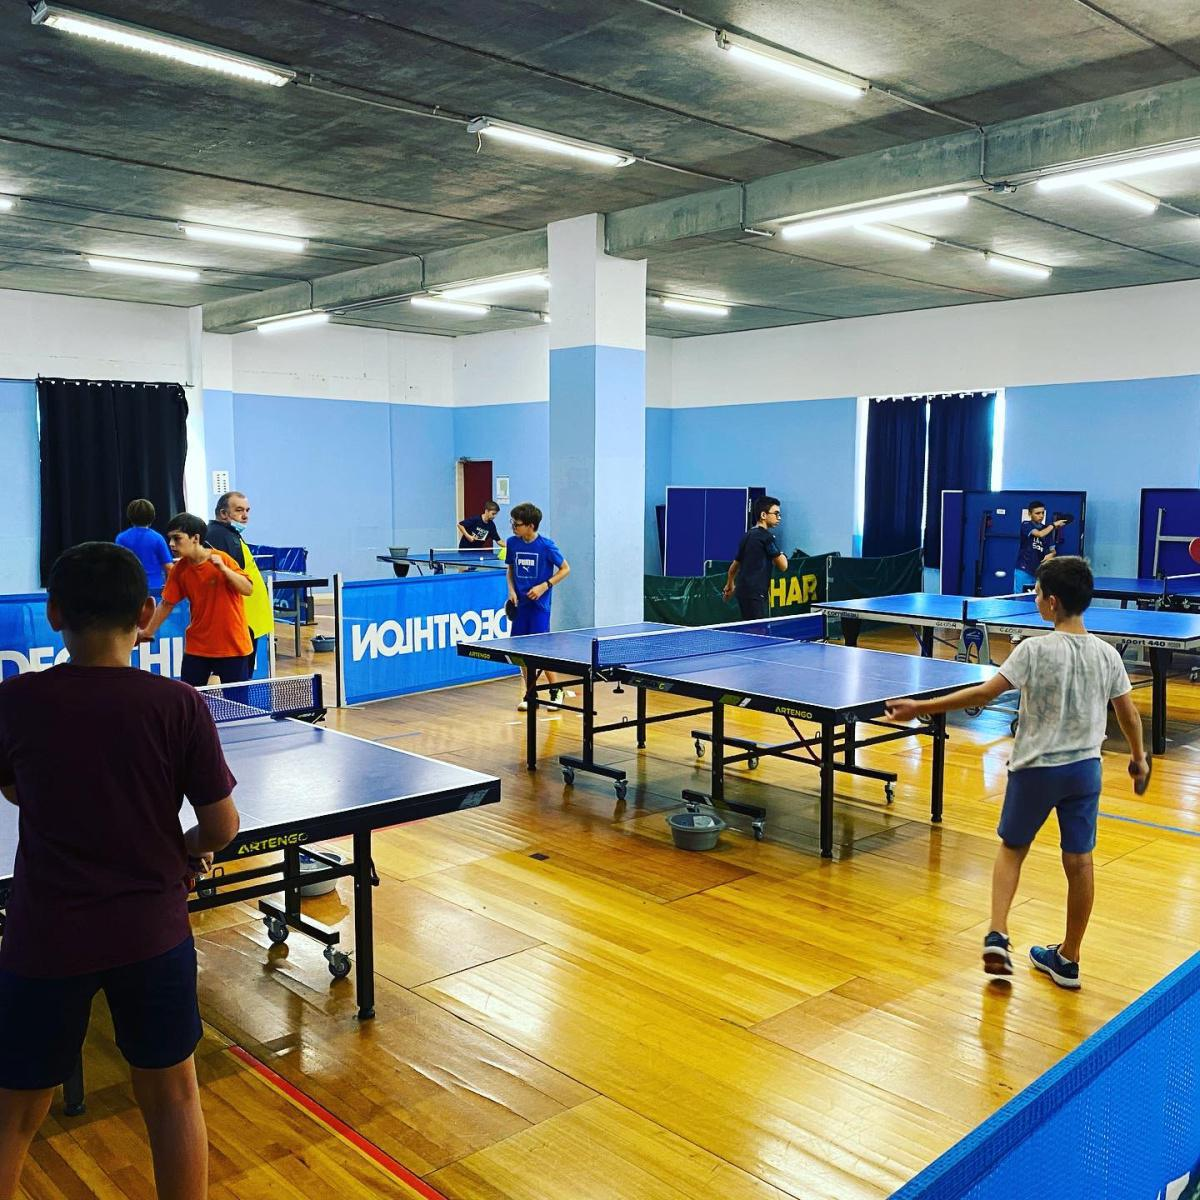 STAGE SPORTIF PINGPONG VACANCES PAQUES 2eme SEMAINE 2021